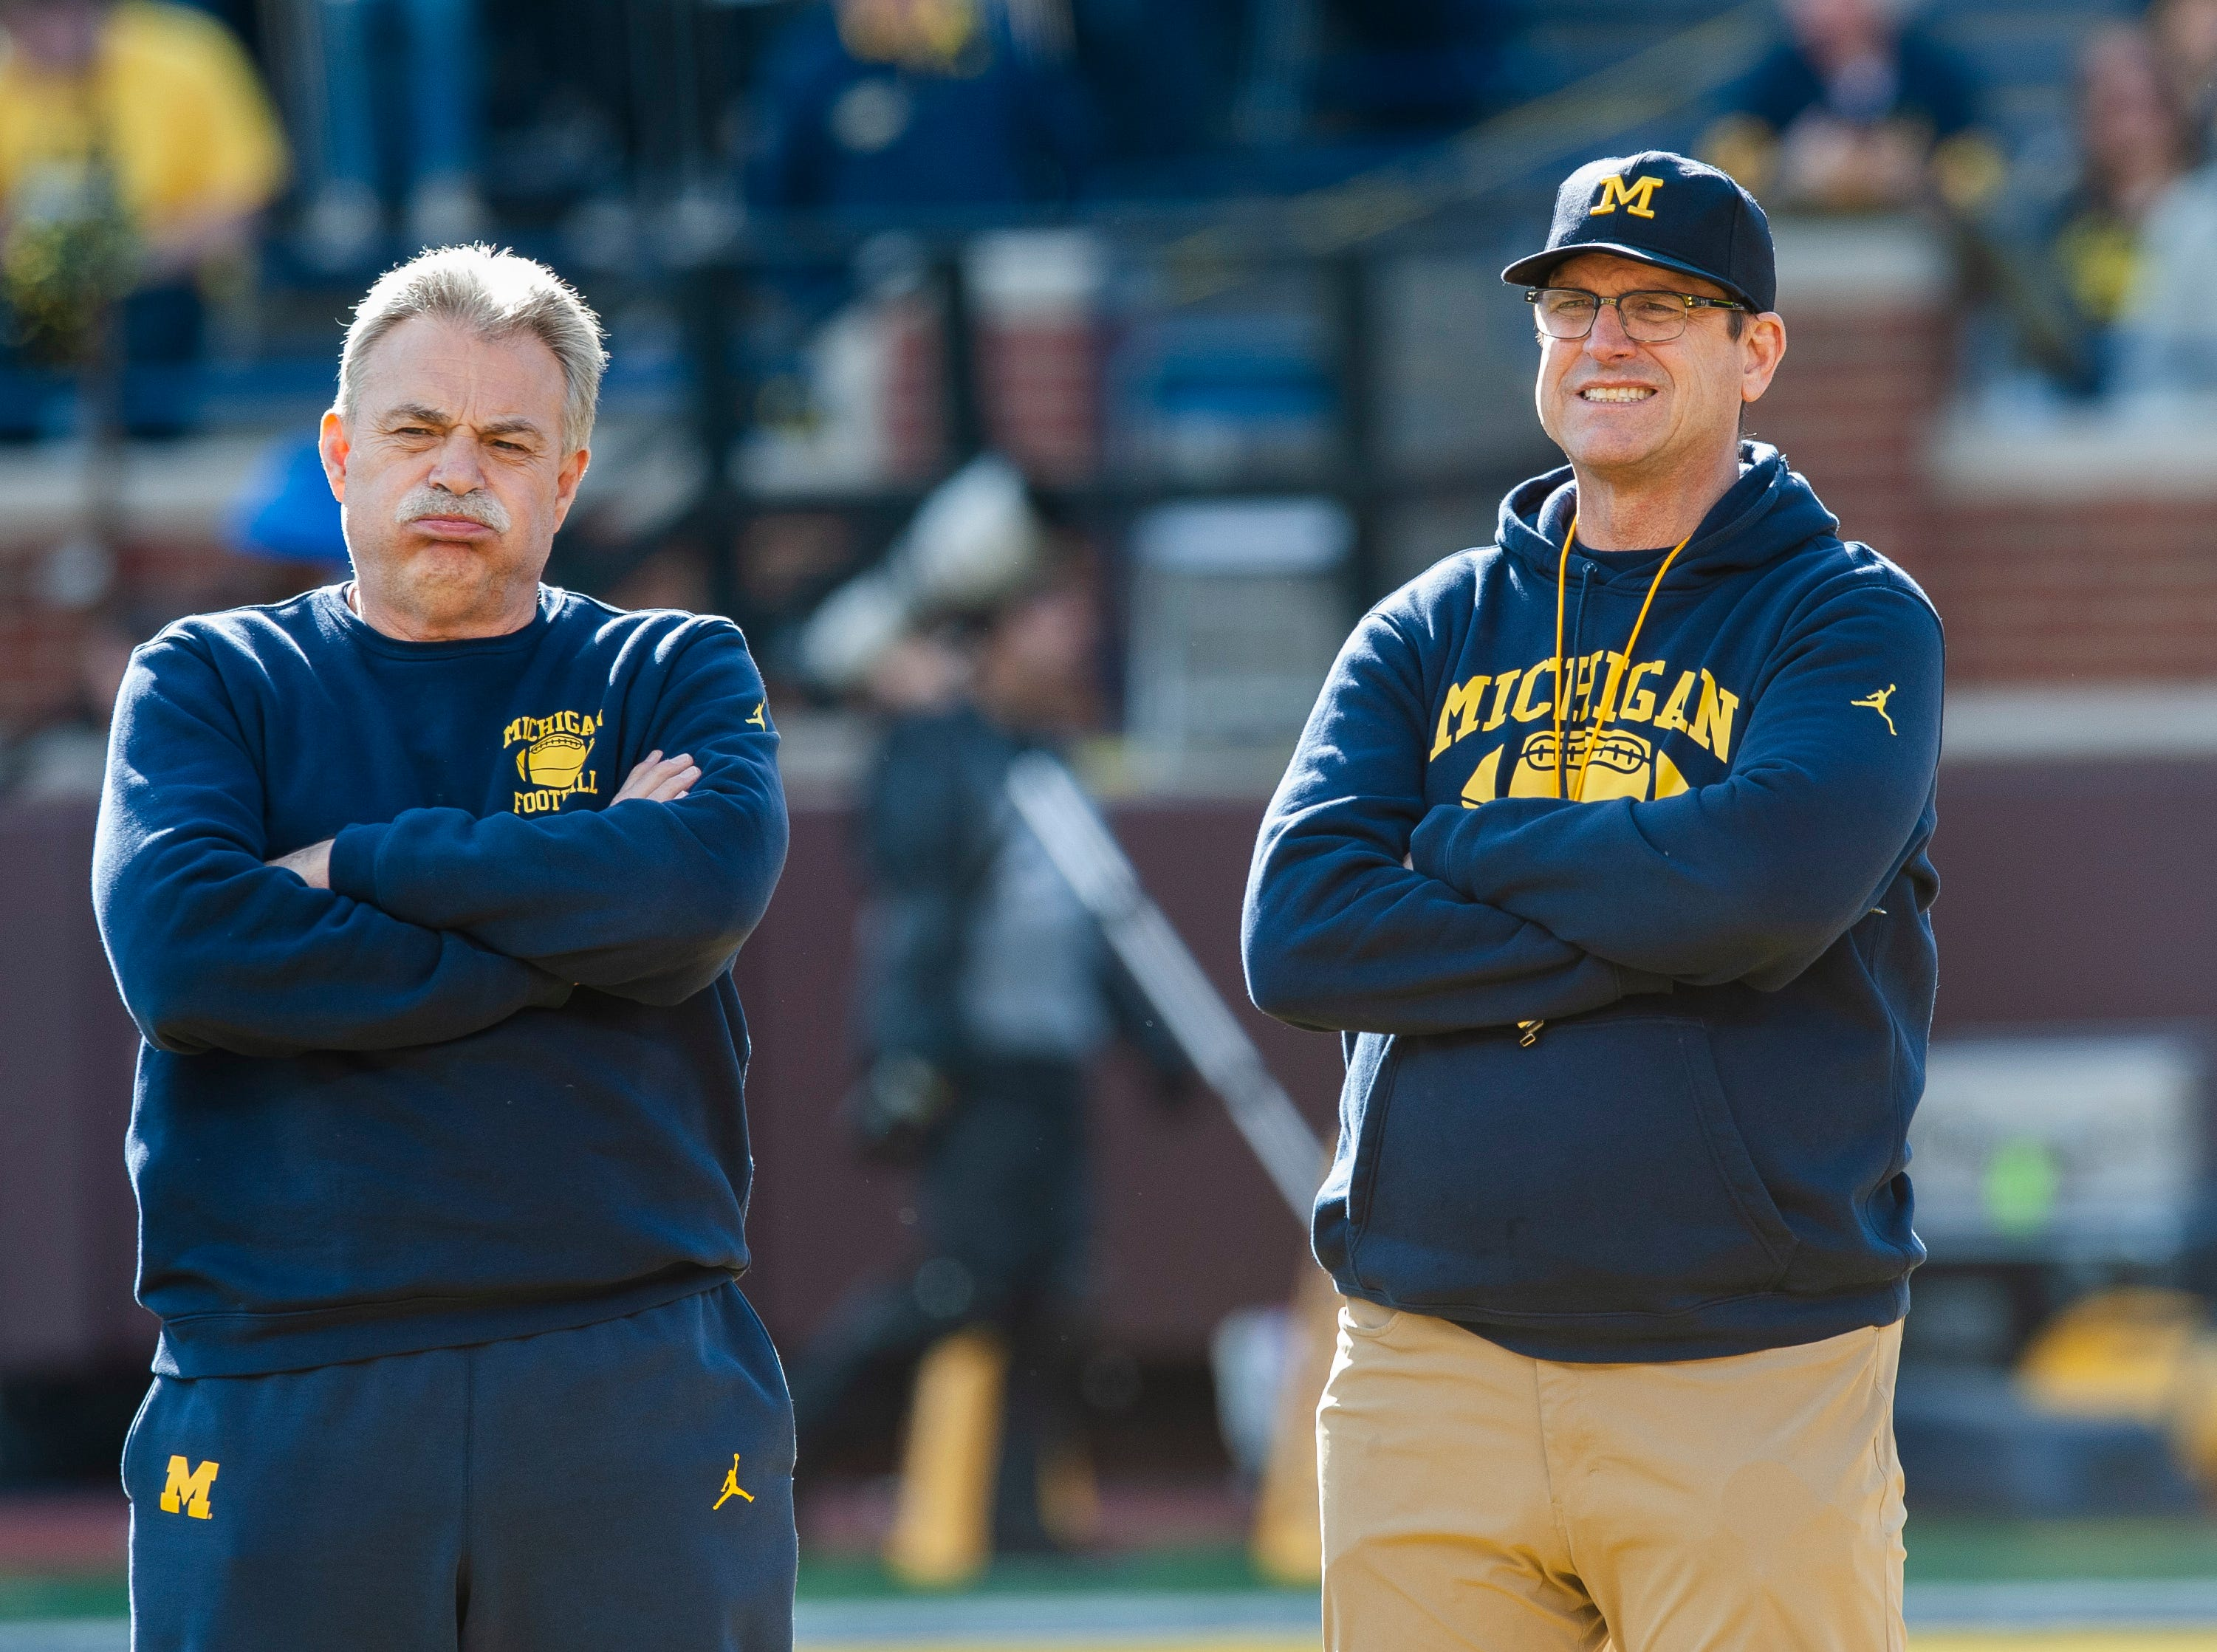 Michigan defensive coordinator Don Brown and head coach Jim Harbaugh look less than enthusiastic as they watch the players run through drills before the start of the scrimmage known as the 2019 Michigan Spring Game at Michigan Stadium in Ann Arbor on Saturday, April 13, 2019.